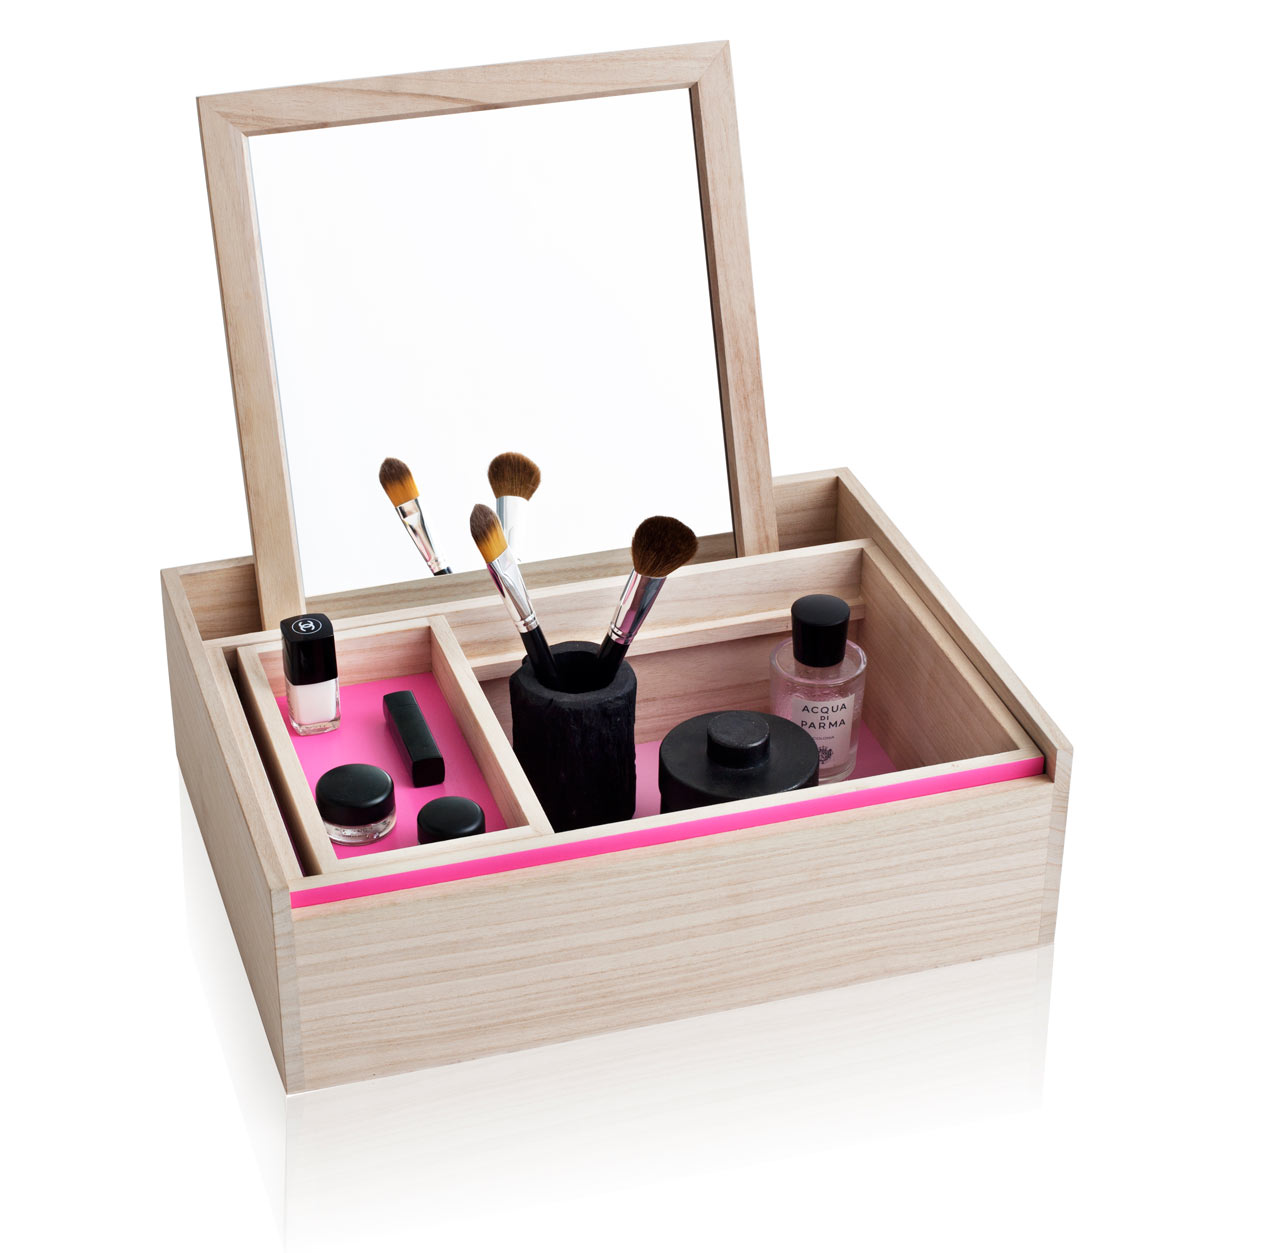 Balsabox Modern Jewelry Box by Nomess Copenhagen